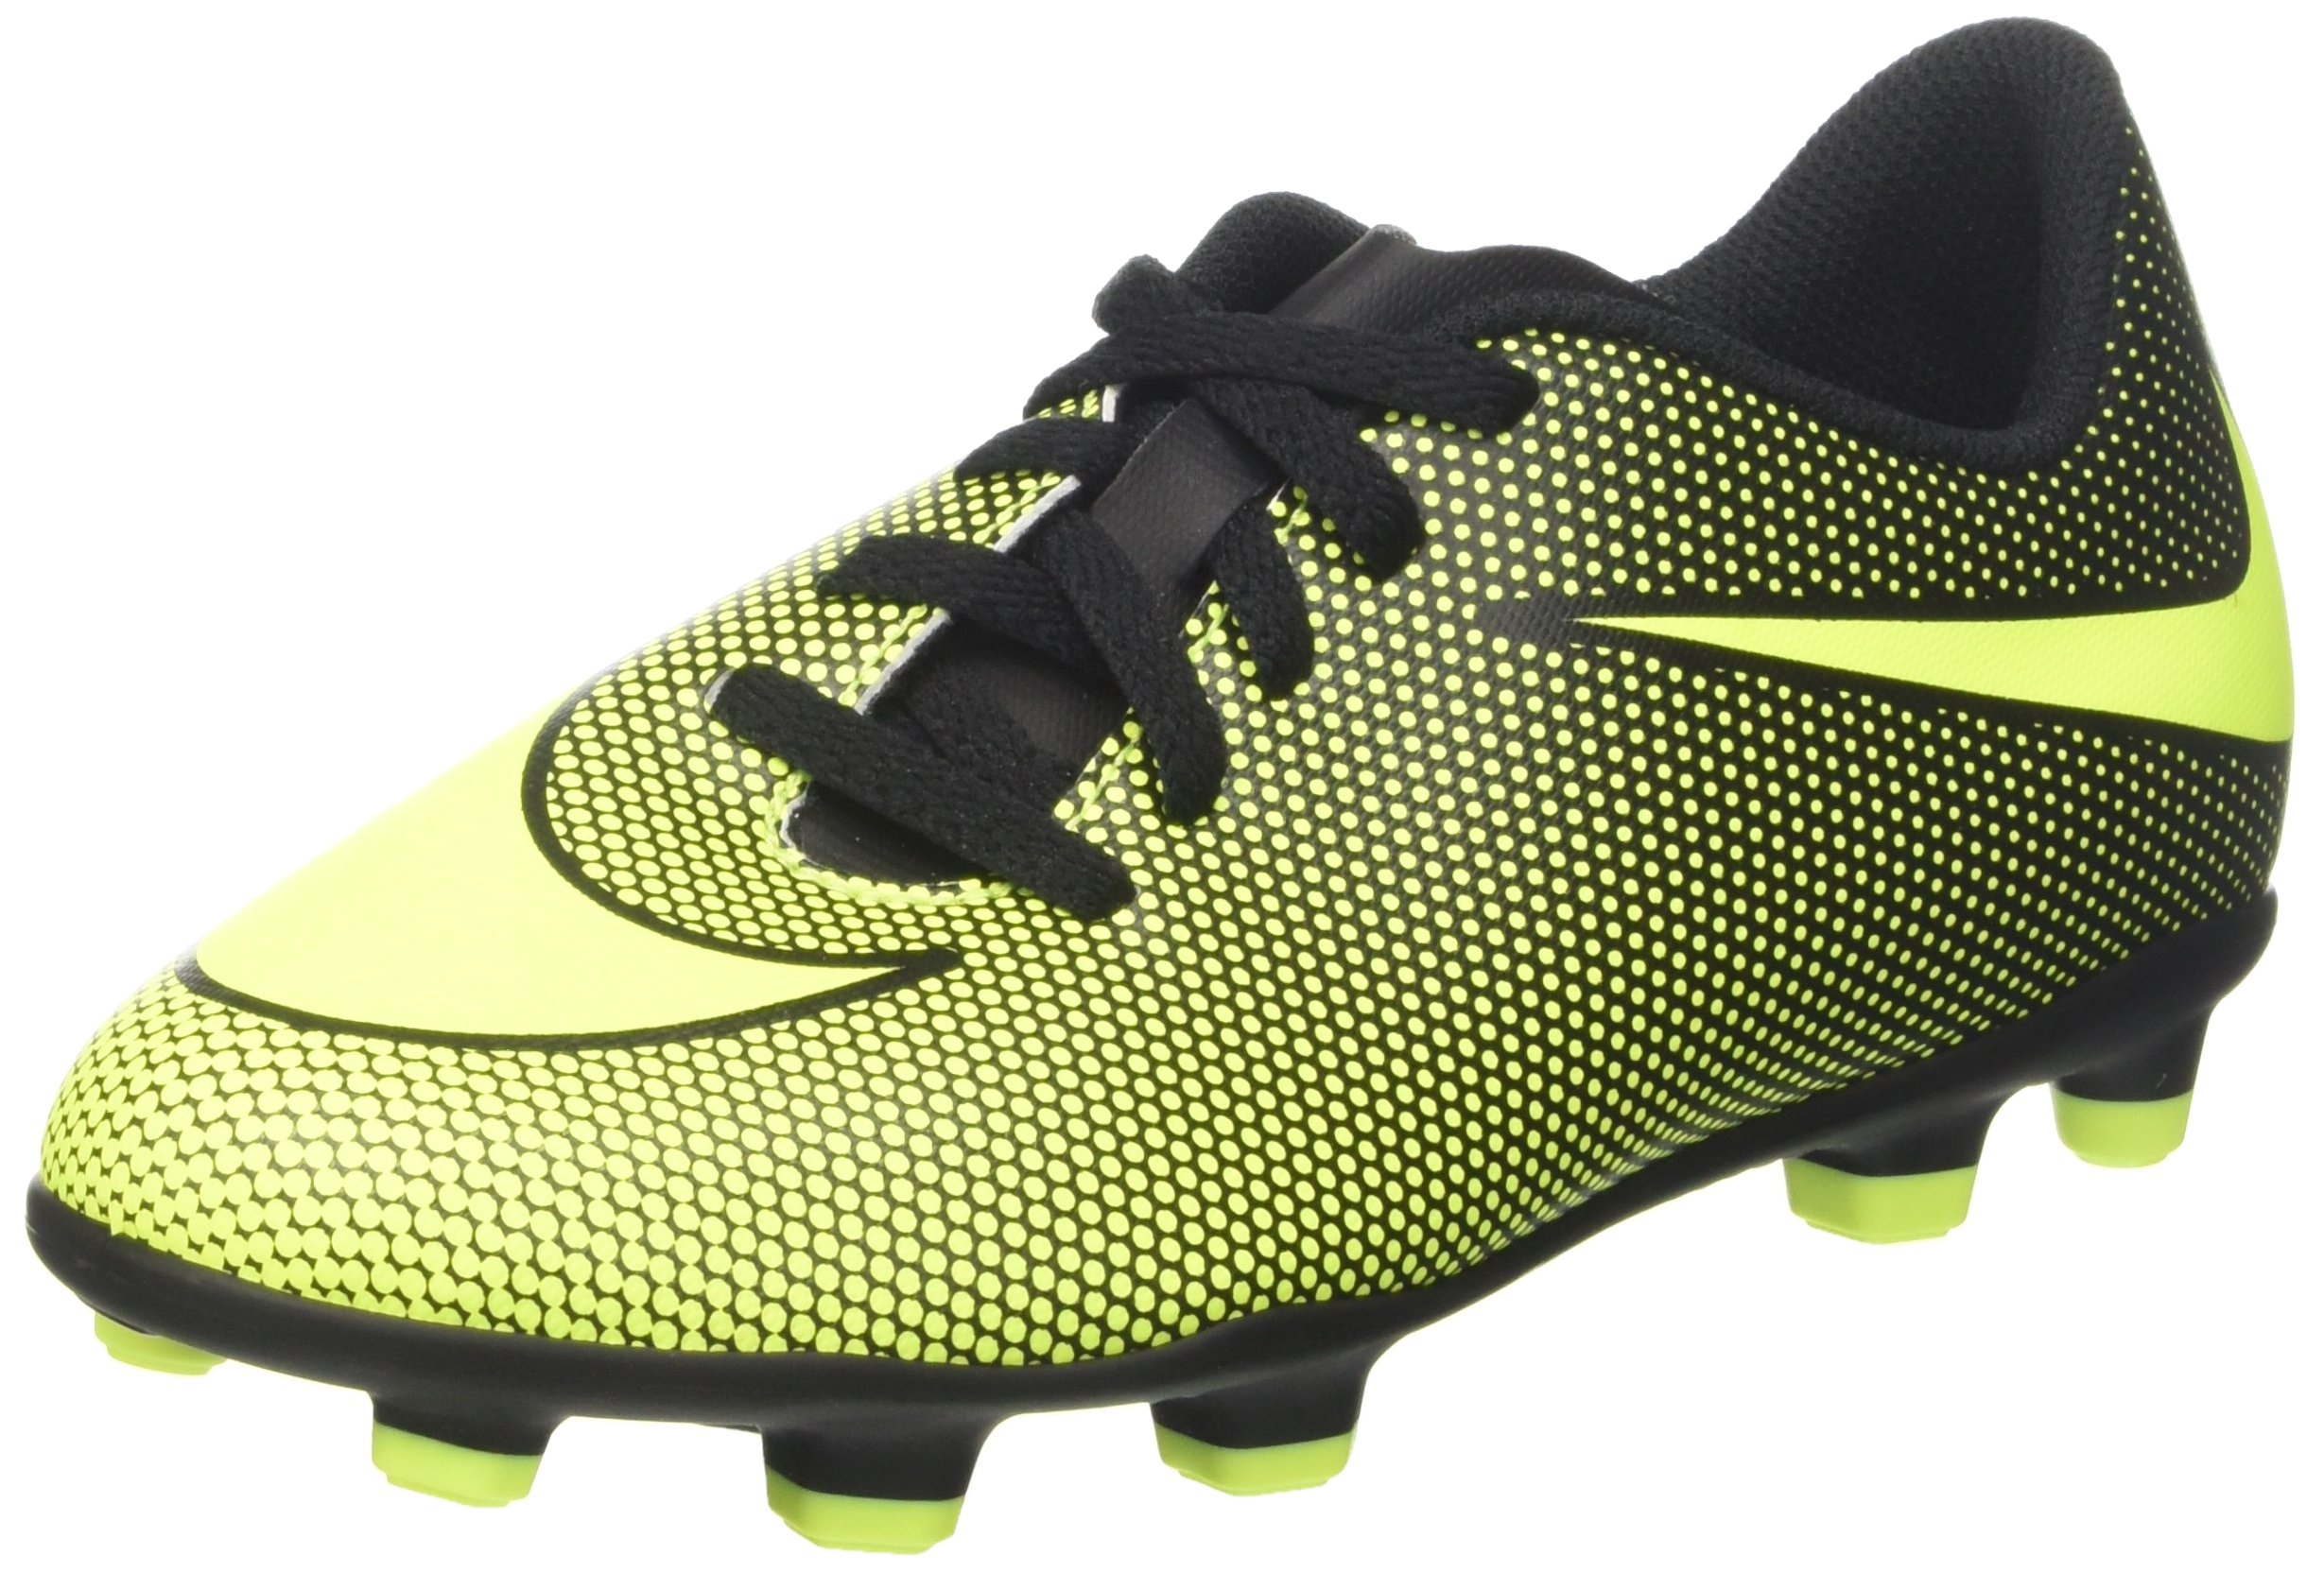 NIKE Boy's JR Bravata II FG Soccer Cleats (2.5 Little Kid M, Black/Volt) by NIKE